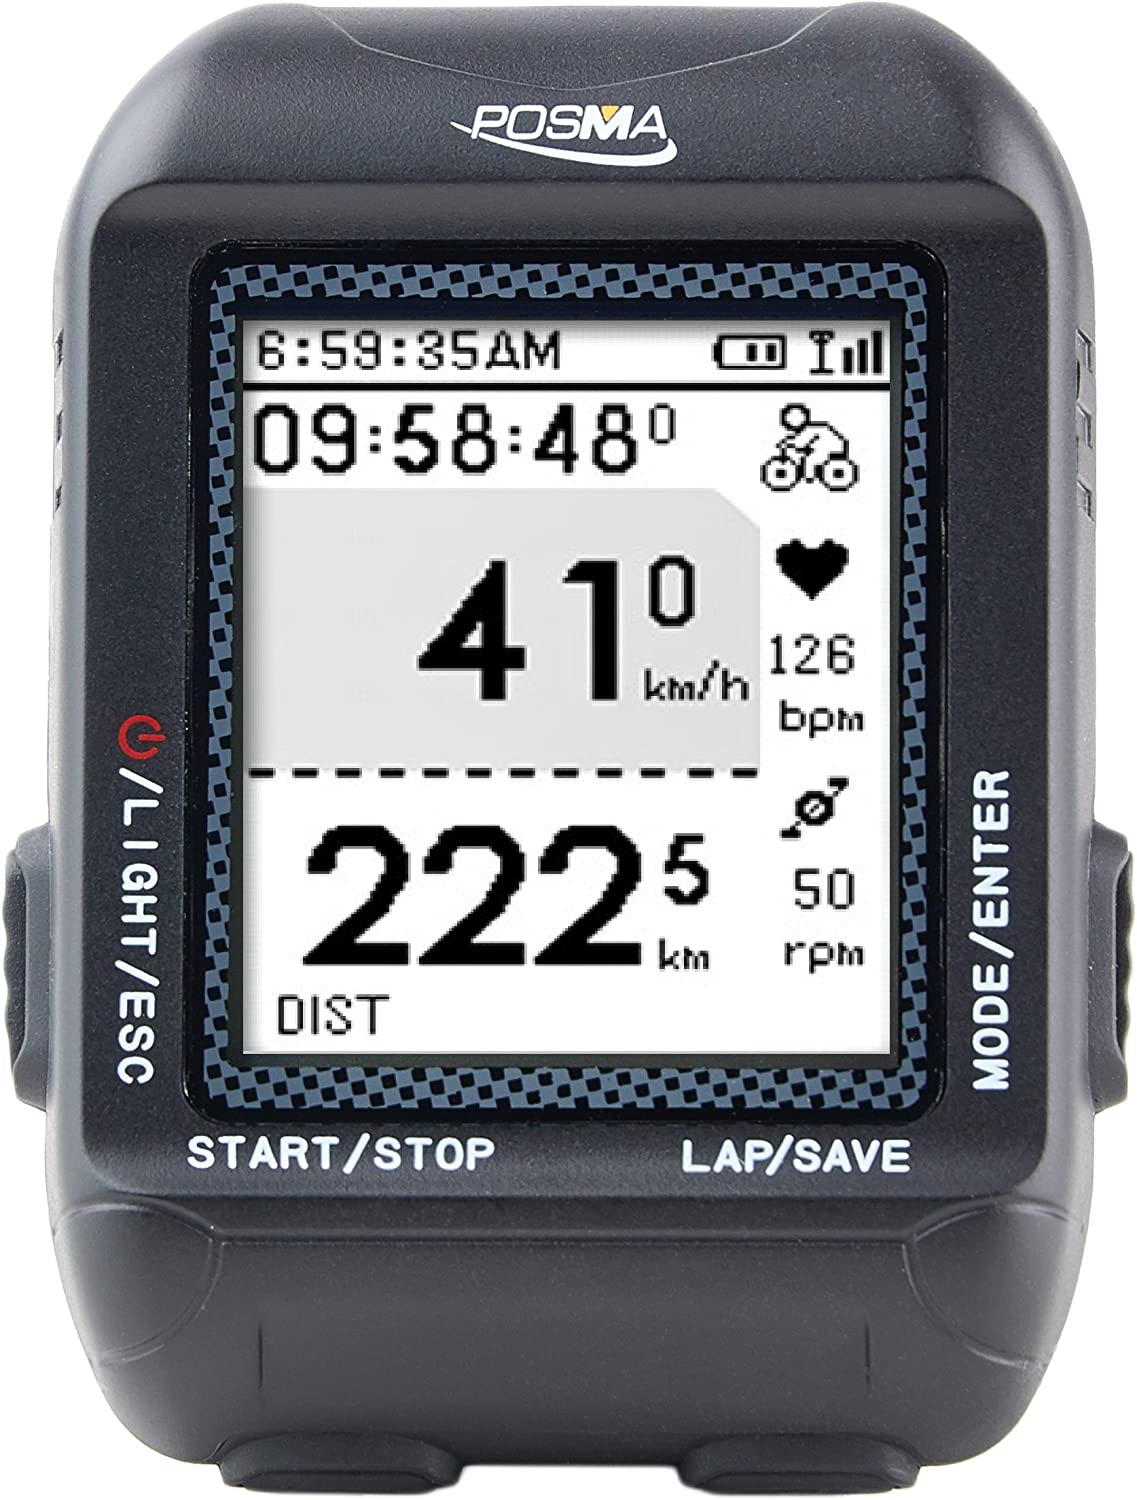 POSMA D2 GPS Wireless Cycling Bike Computer Speedometer Odometer with Navigation, ANT+ connection, support GPX file upload to STRAVA and MapMyRide (BHR20 Heart Rate Monitor and BCB20 Speed Cadence Sensor Bundle Option Available)